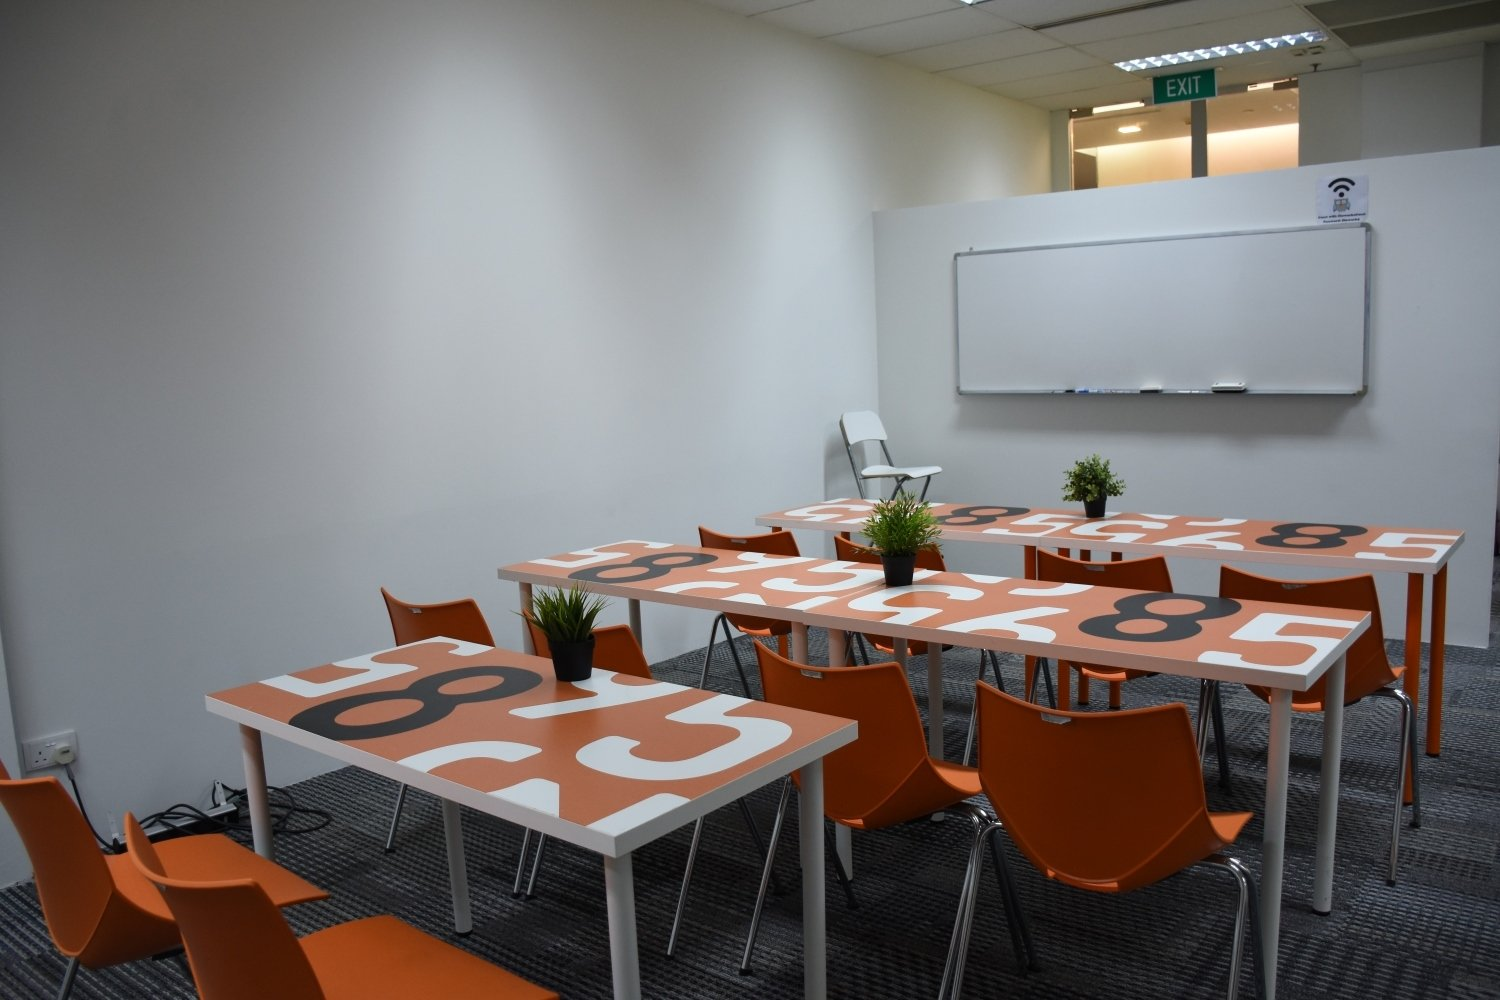 diowork training room for rent singapore